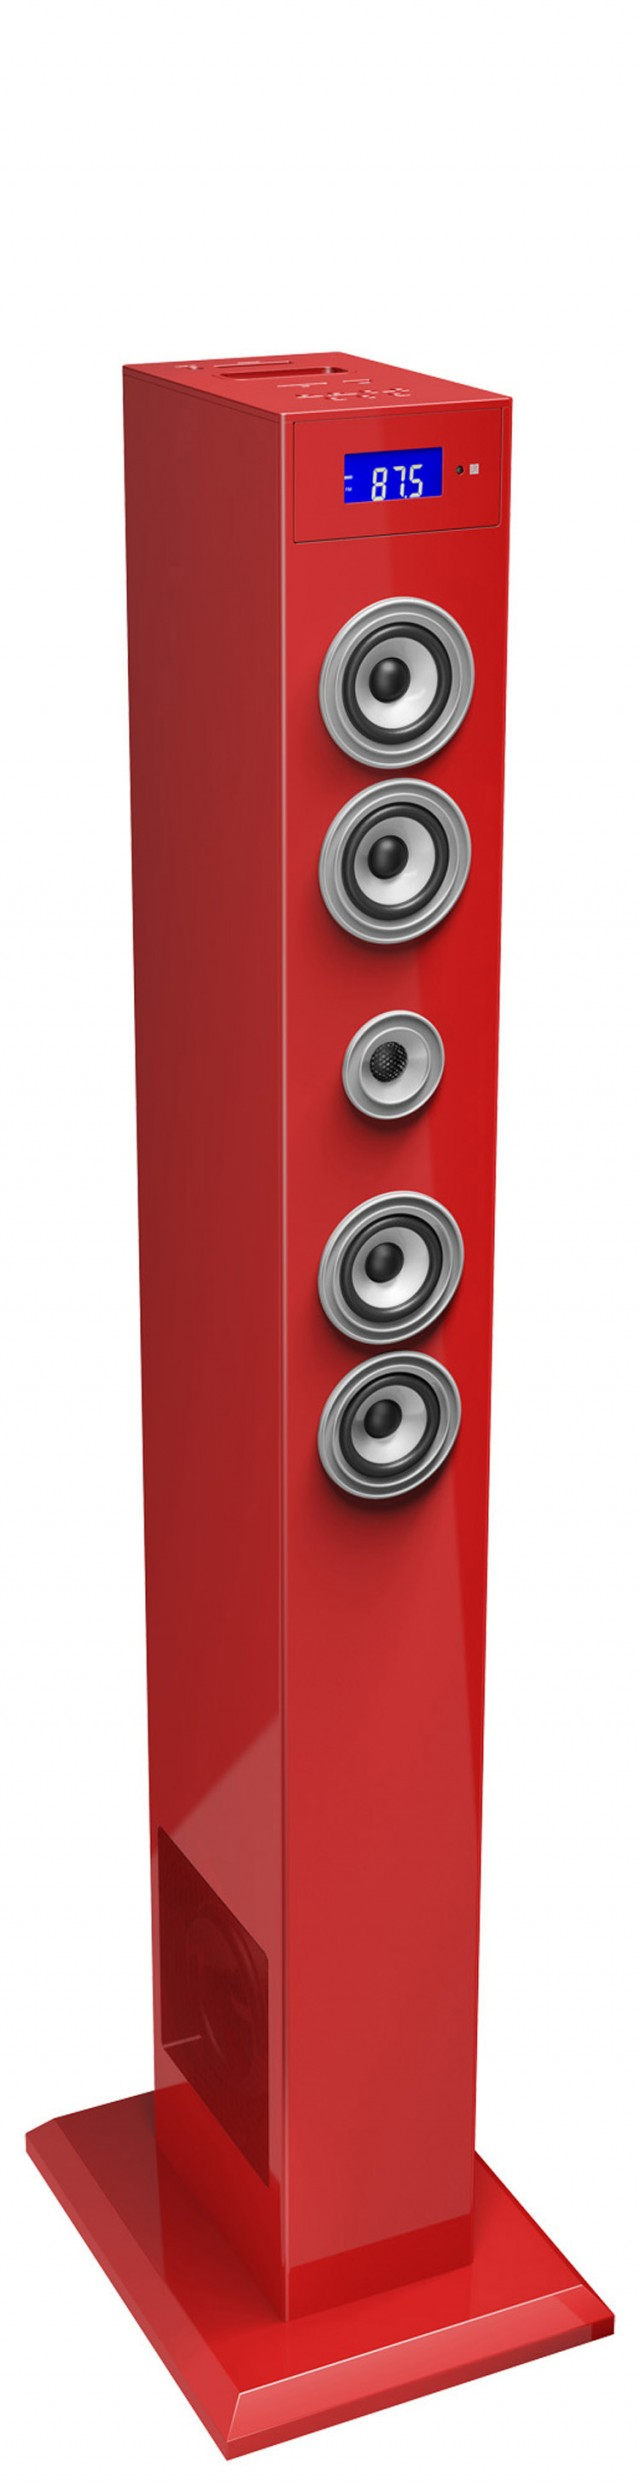 Multimedia tower with adaptador Bluetooth (Red) - Packshot